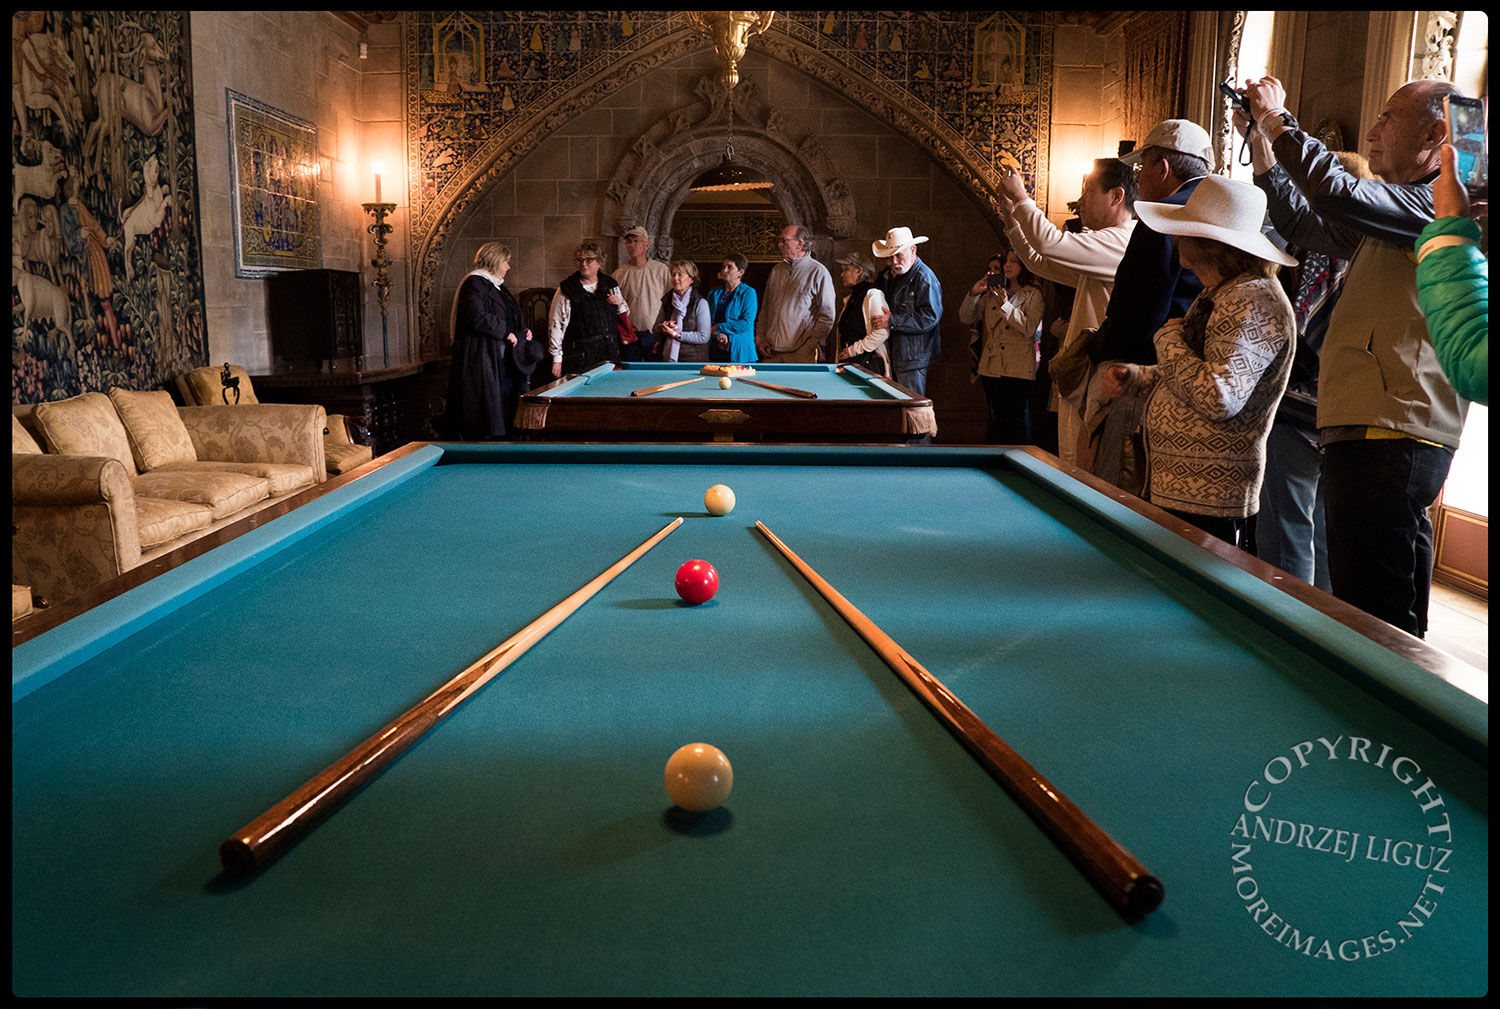 Pool Room, Hearst Castle, San Simeon, CA 2015-03-02